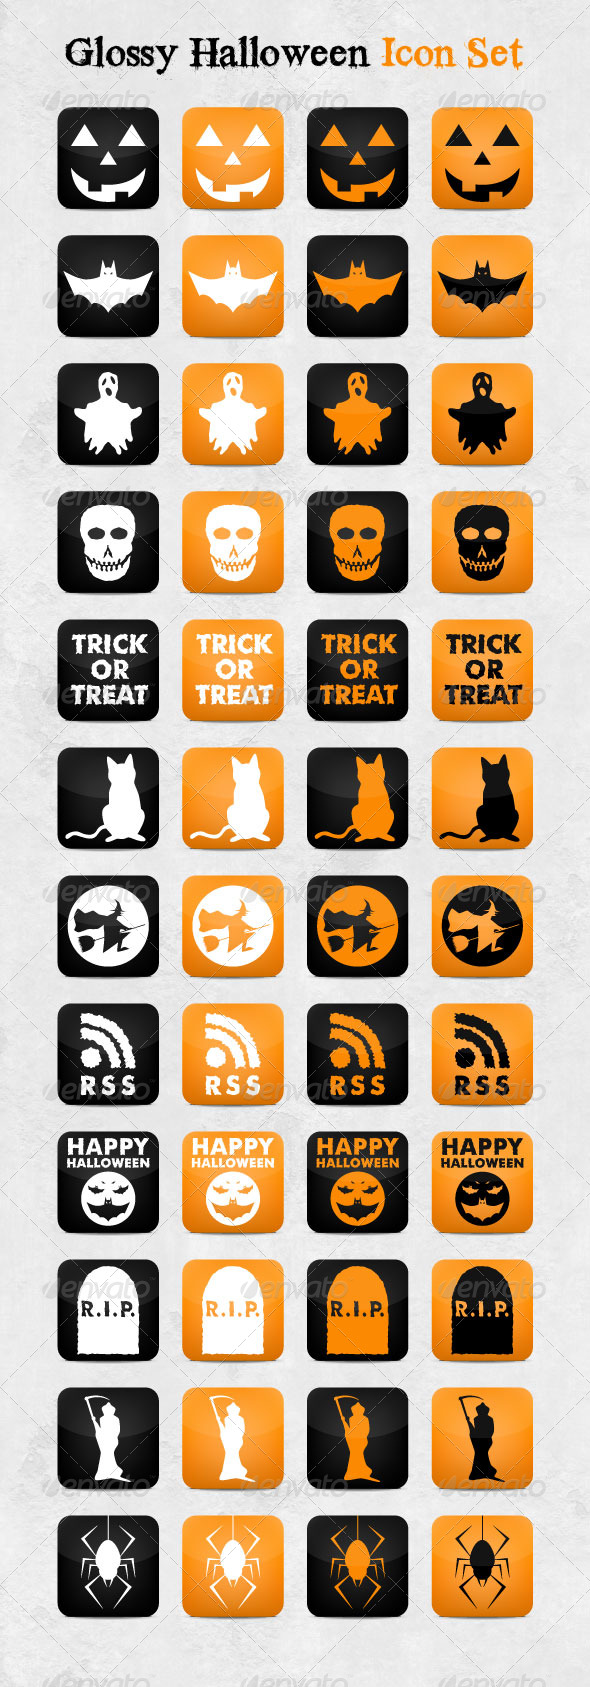 Glossy Halloween Icon Set - Seasonal Icons